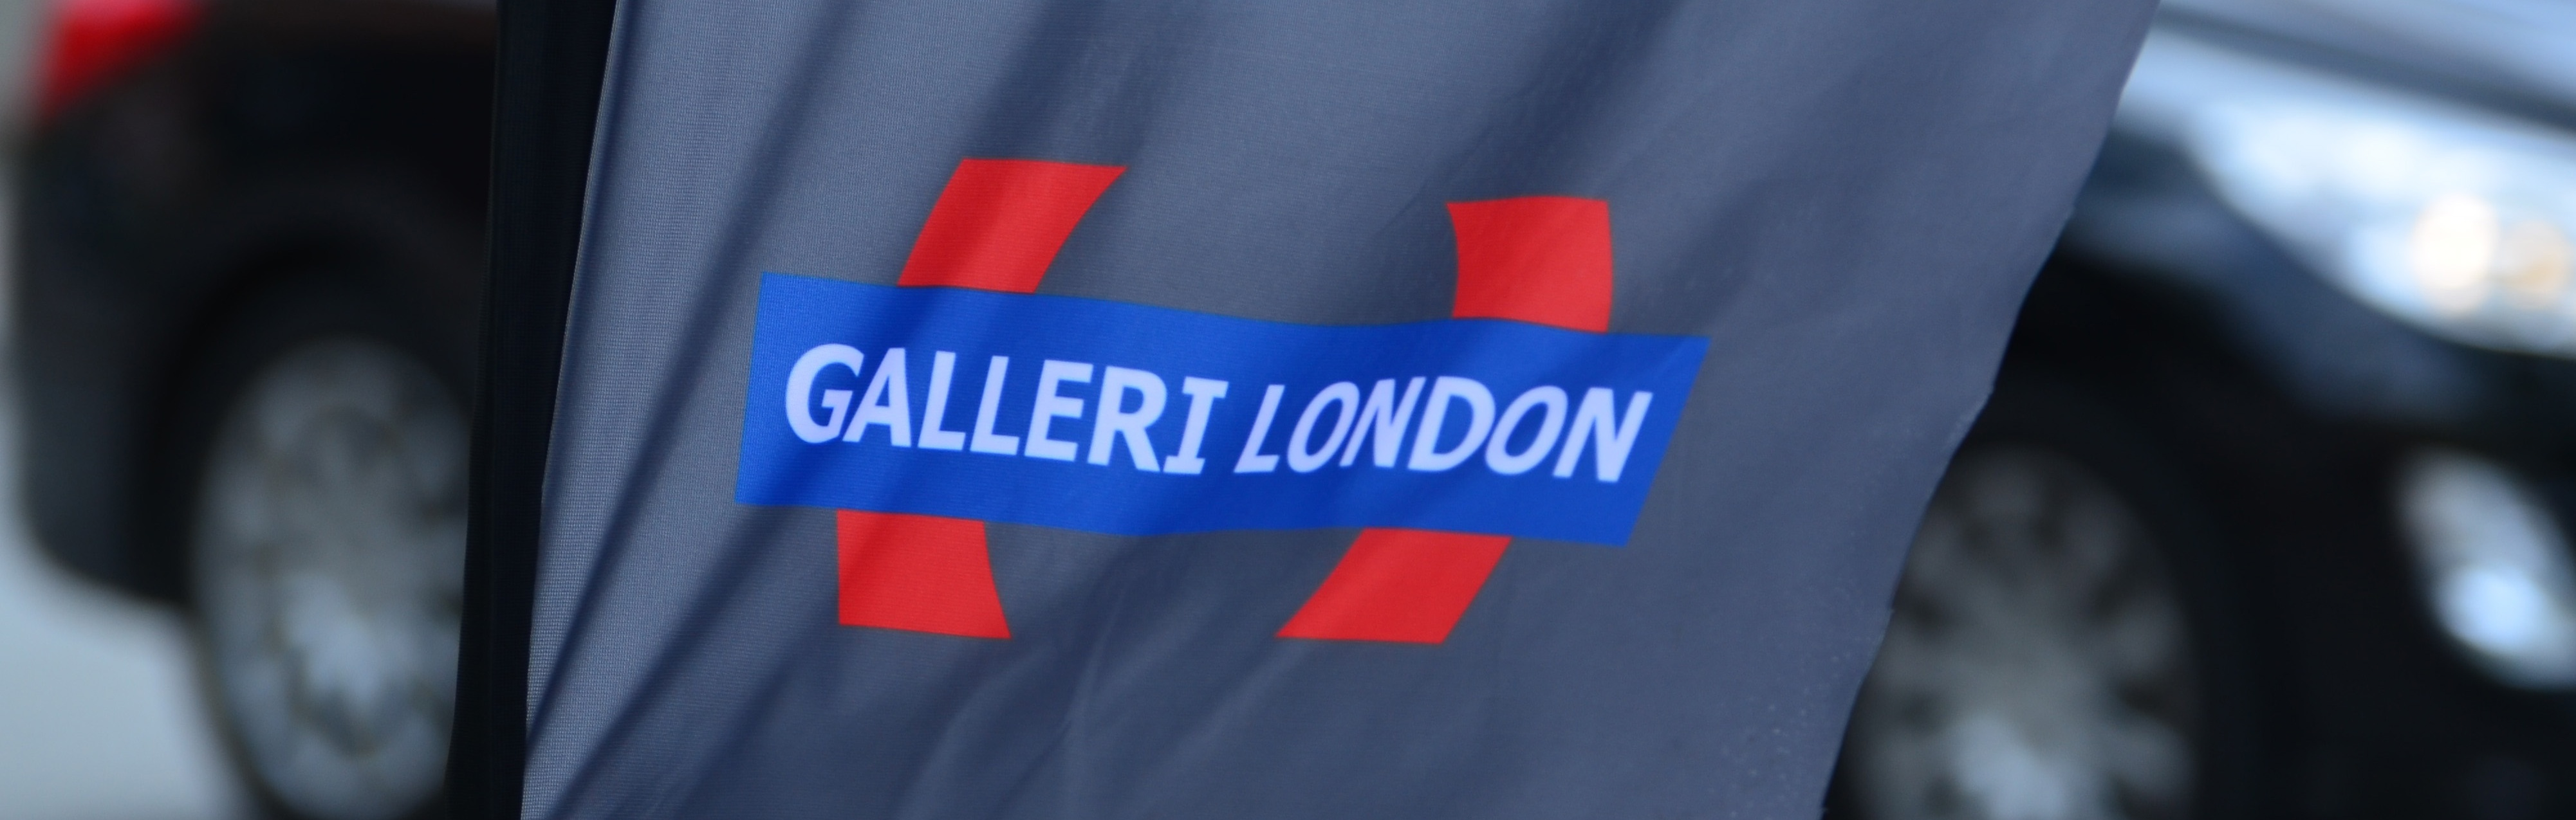 Link to Galleri London Facebook page